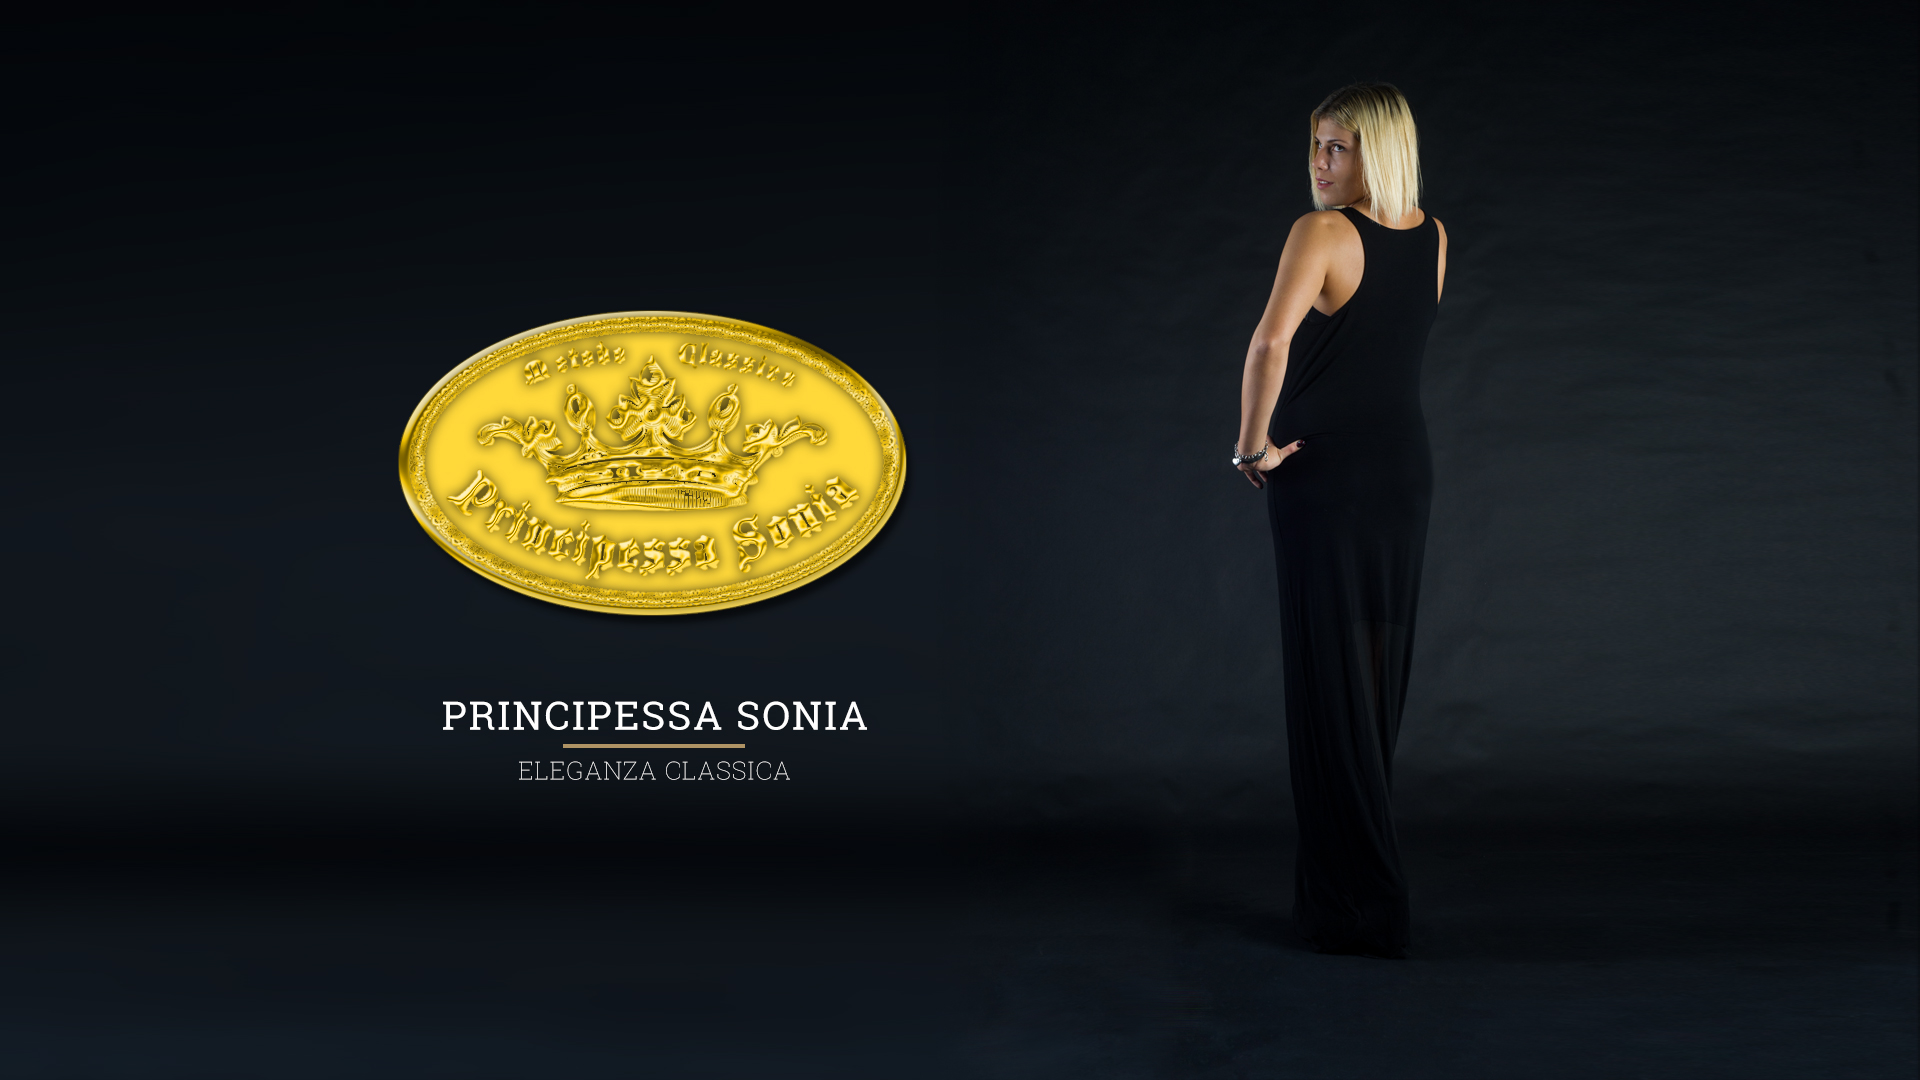 PRINCIPESSA SONIA it